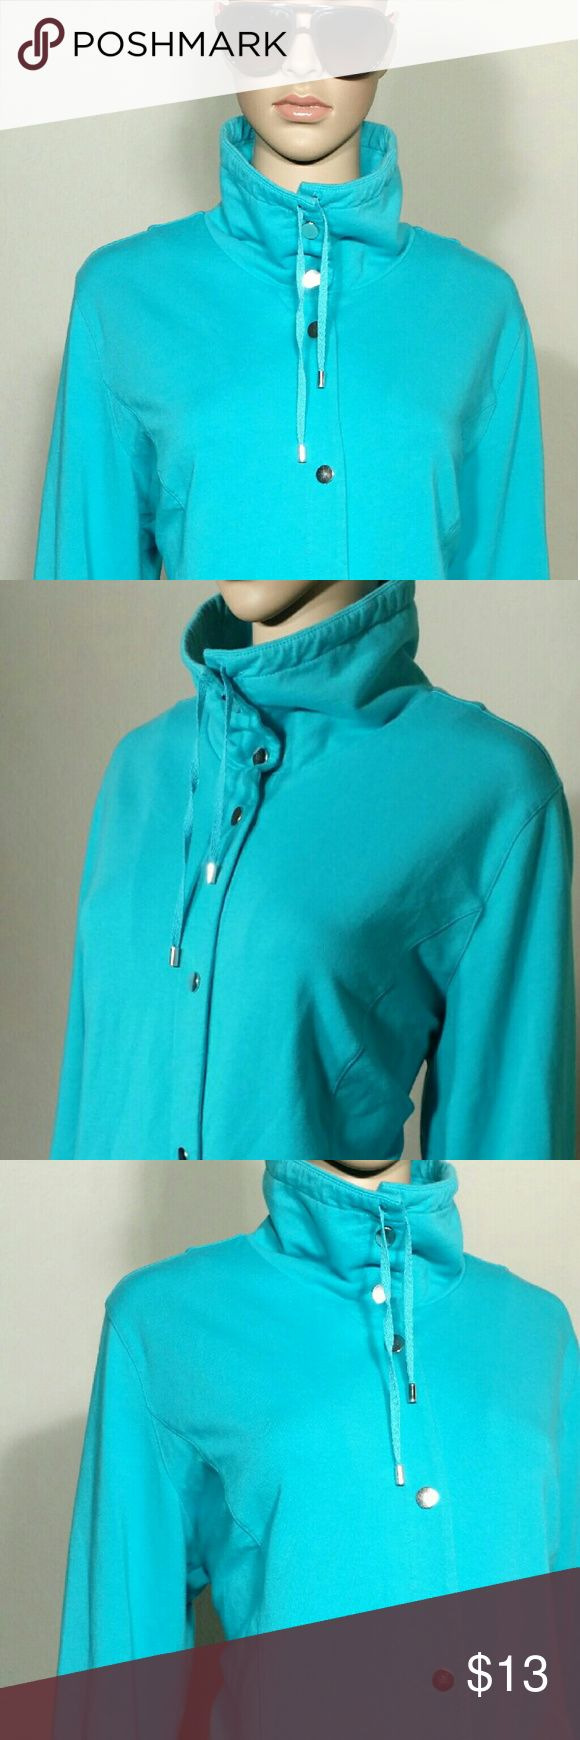 Karen Scott Sports Light Blue Full Snaps Jacket **LAST PIECE** Size XL EXTRA LARGE 97% Cotton 3% Spandex In very good condition!! Very adorable!! A great gift!! Fast shipping!! Karen Scott Jackets & Coats